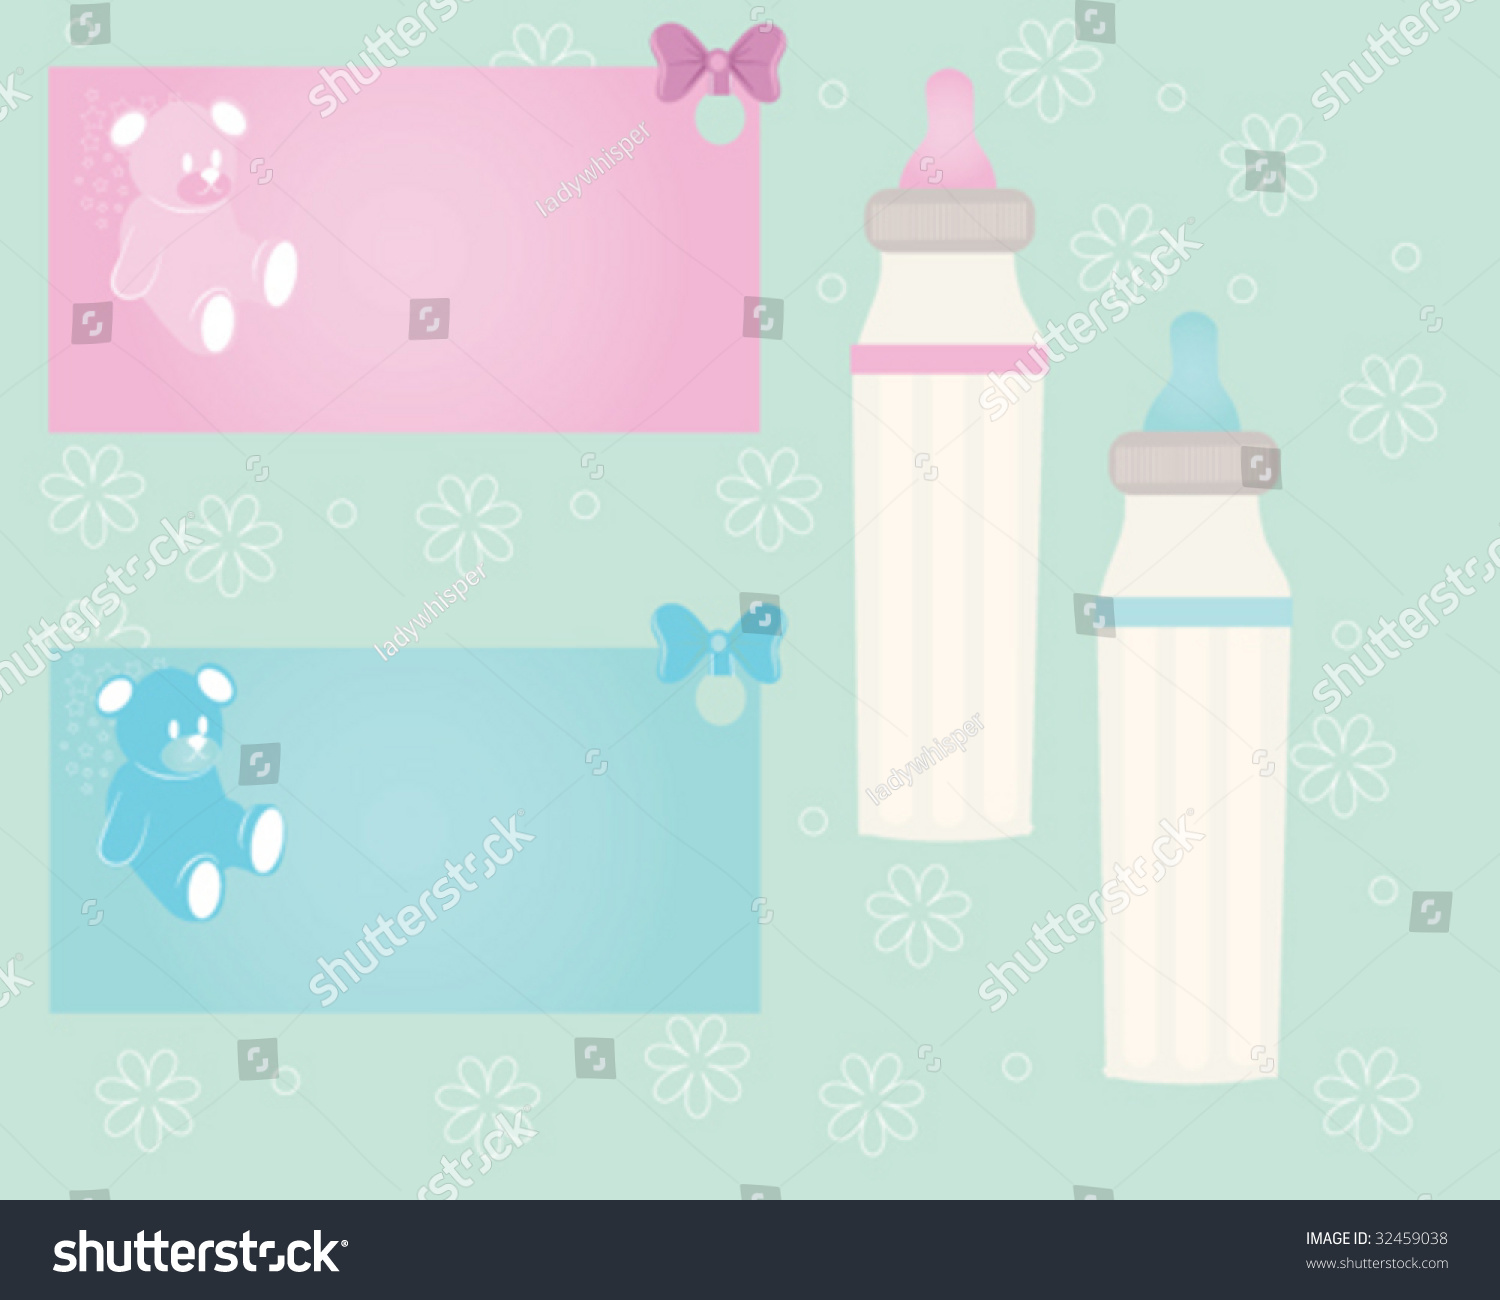 Baby Gift Vector : Baby gift tags stock vector illustration